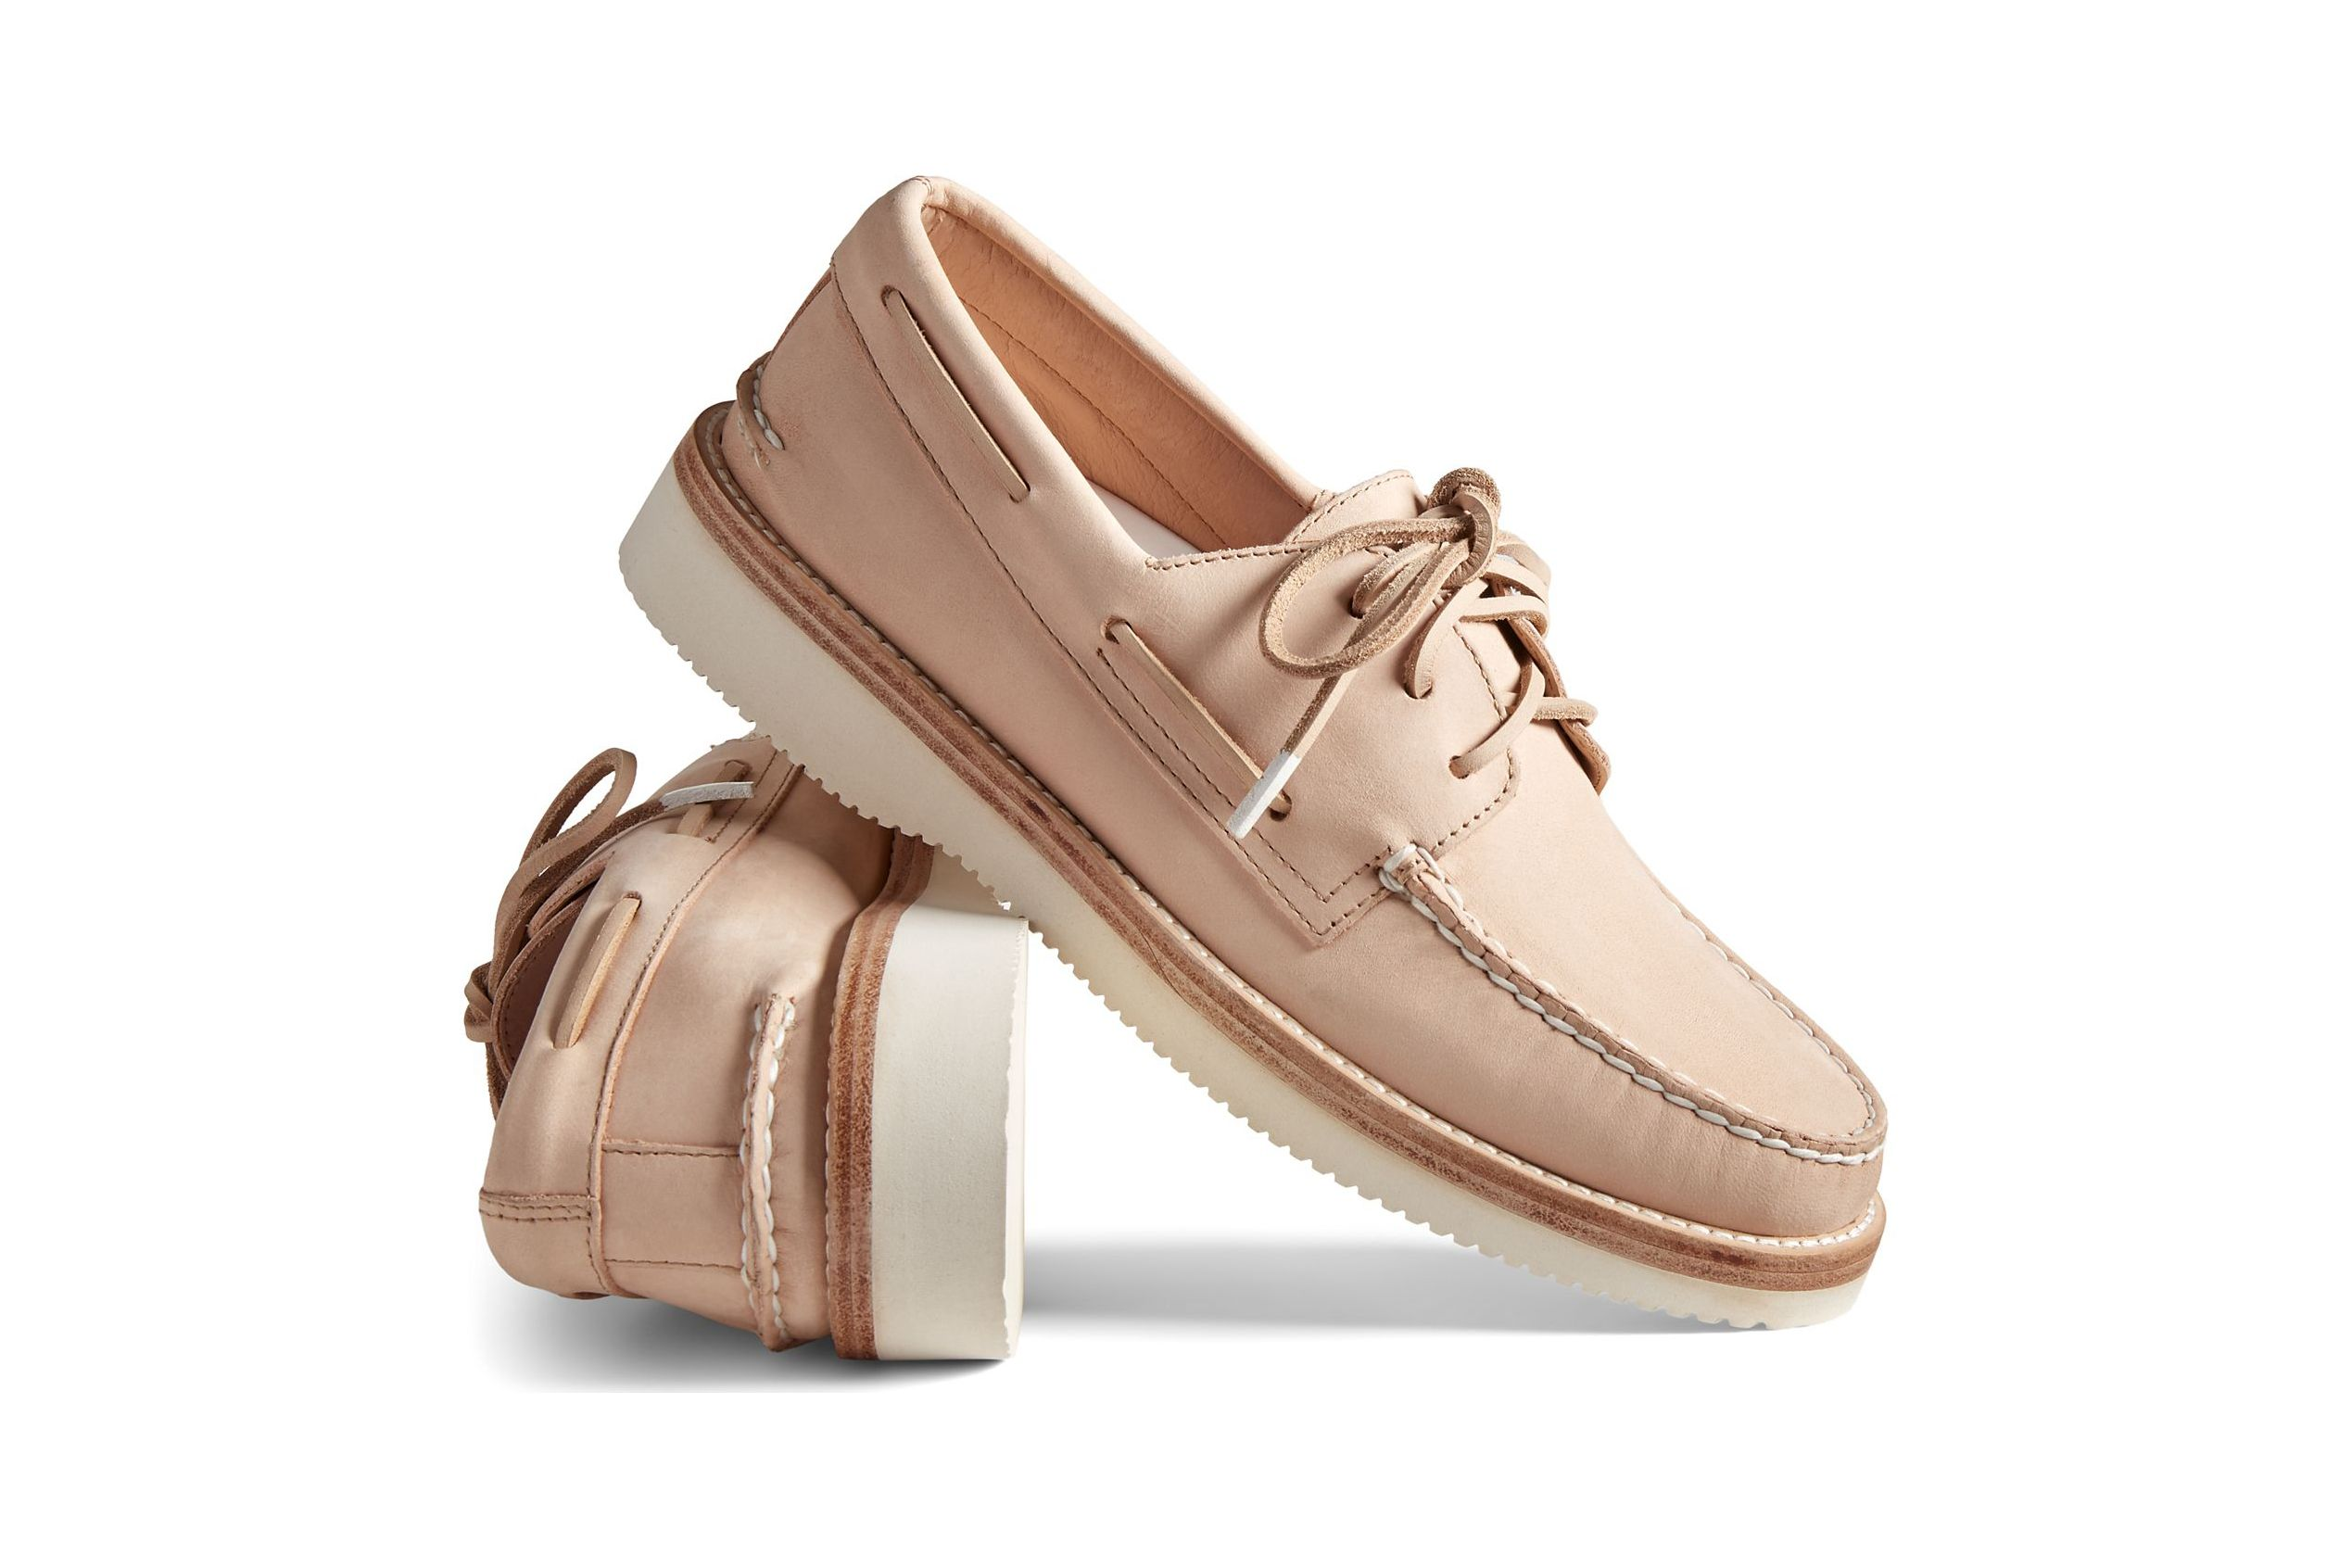 Premium Leather on a Pair of Sperrys